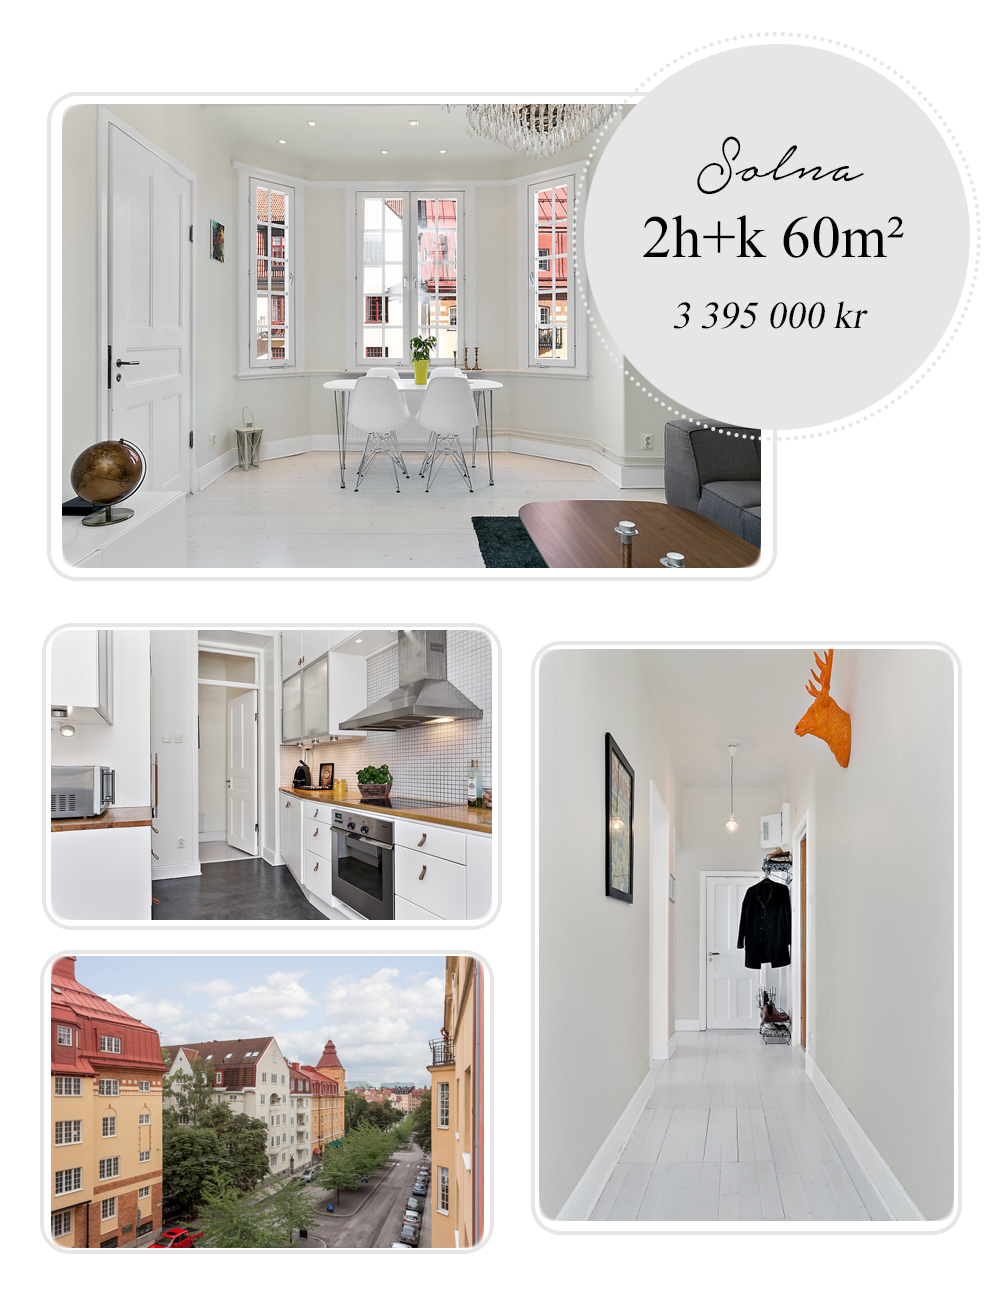 Apartment in Solna Stockholm